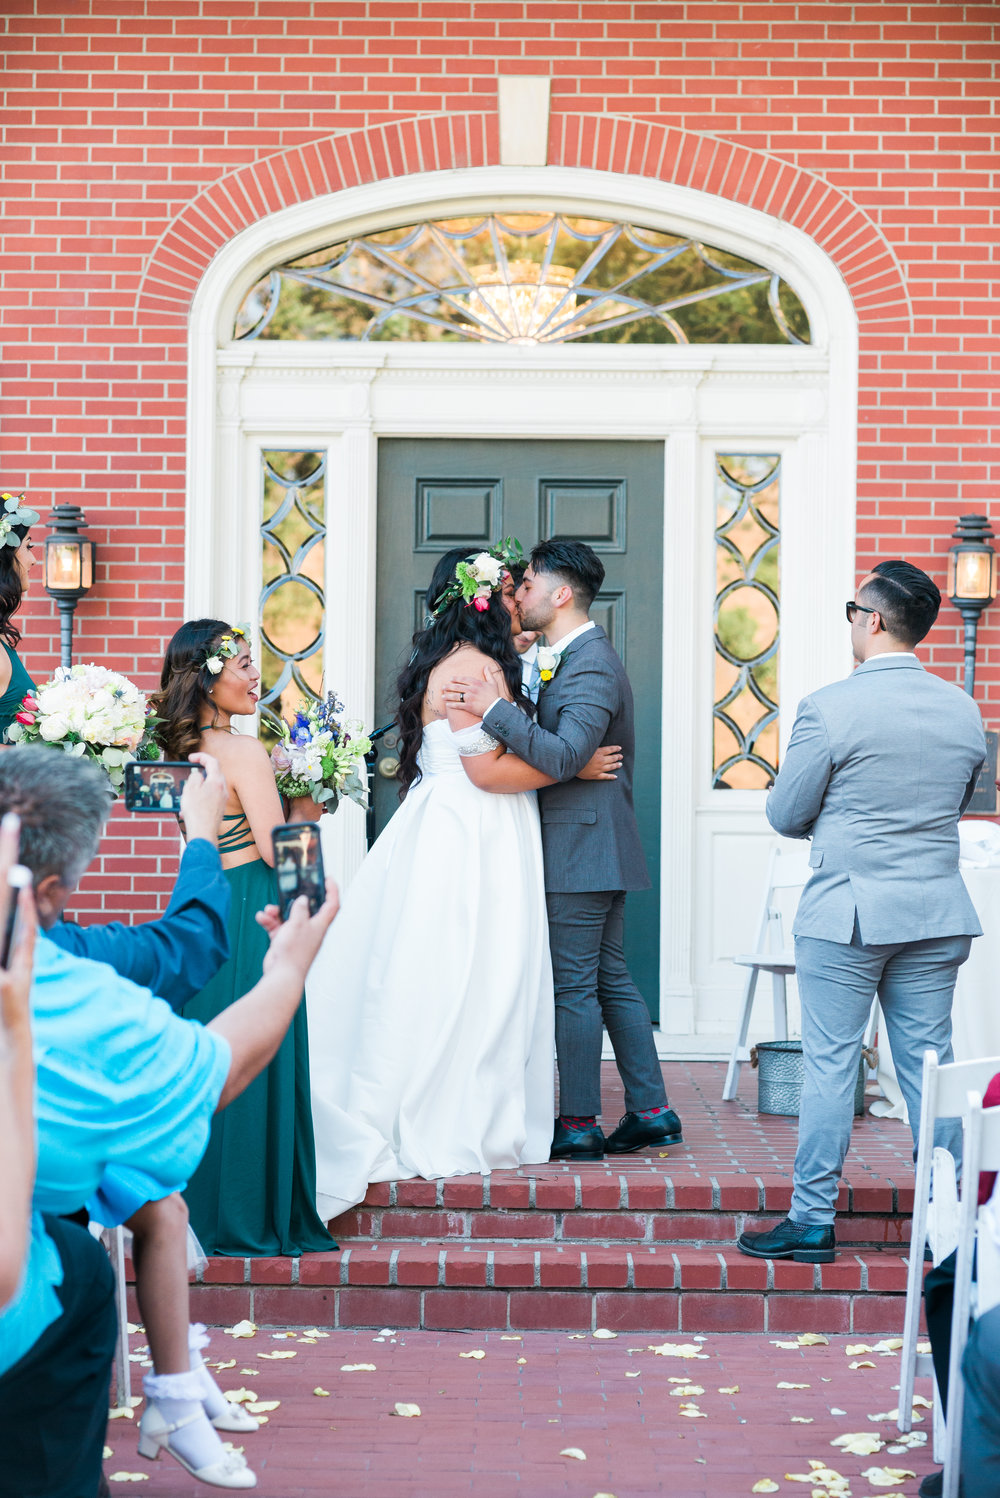 riverside-southern-california-wedding-photographer-ica-images-first-kiss-ceremony